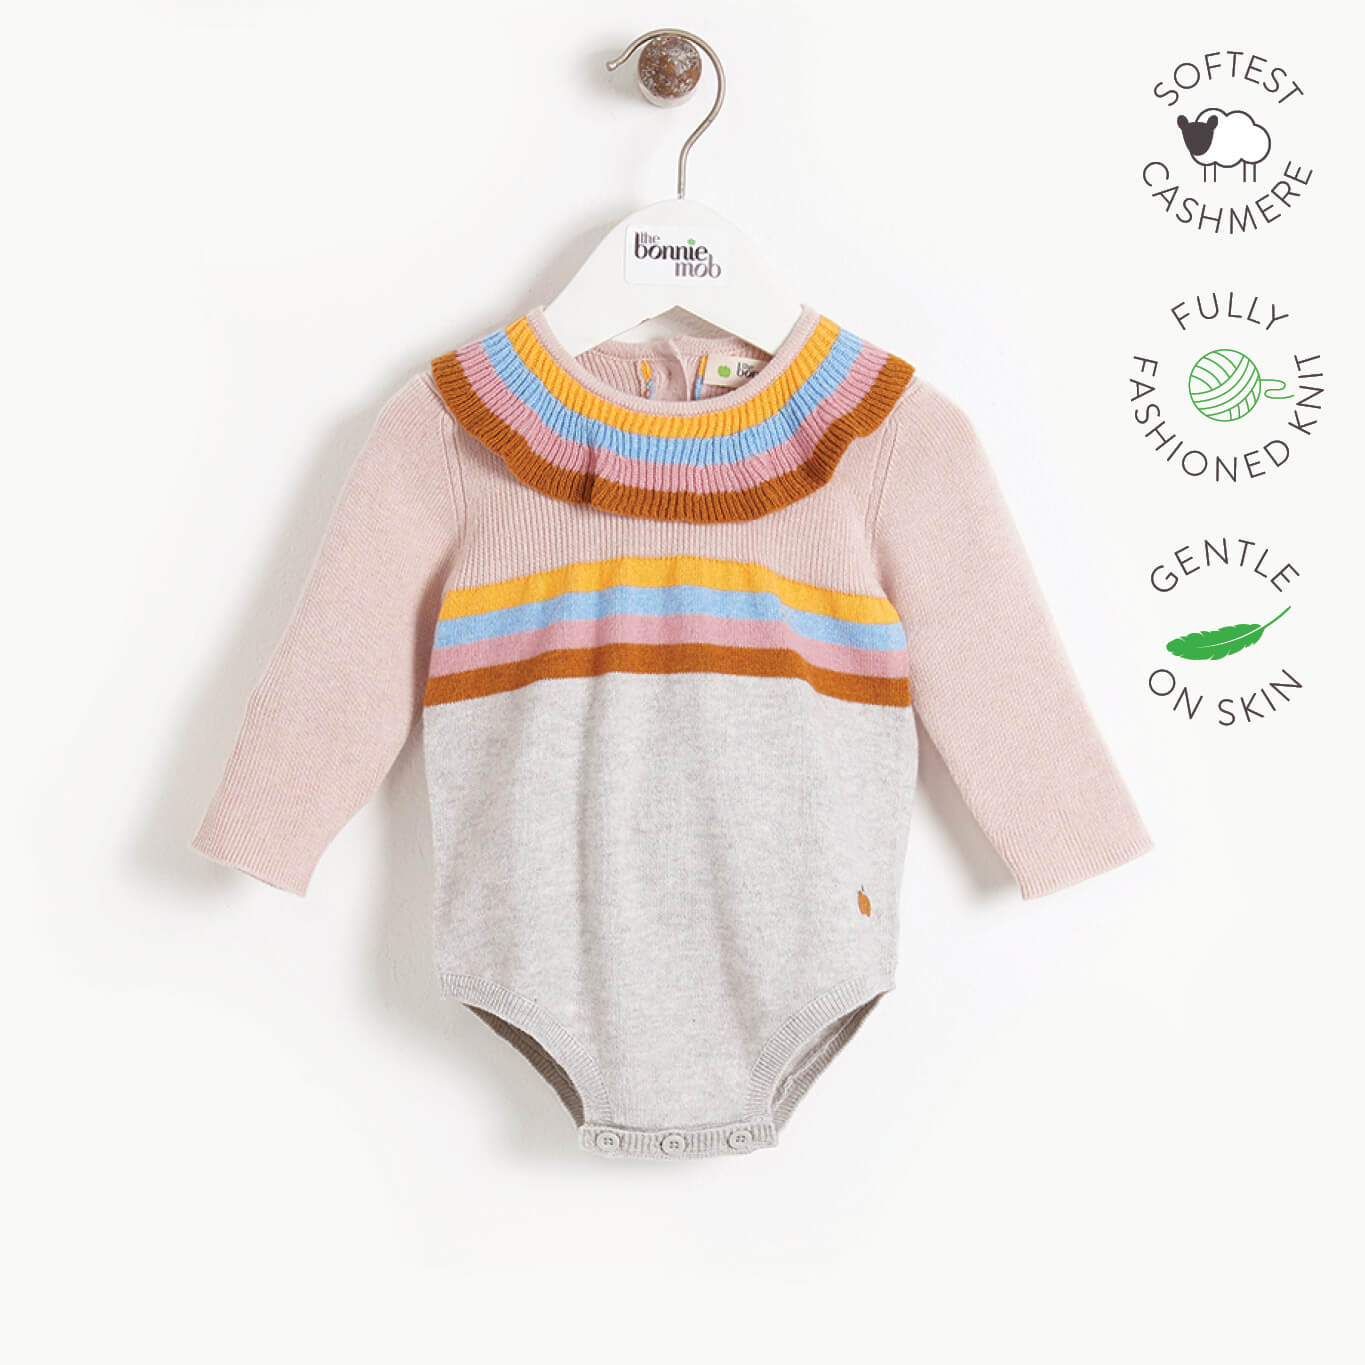 MCCARTNEY - Baby Knitted Romper - PINK